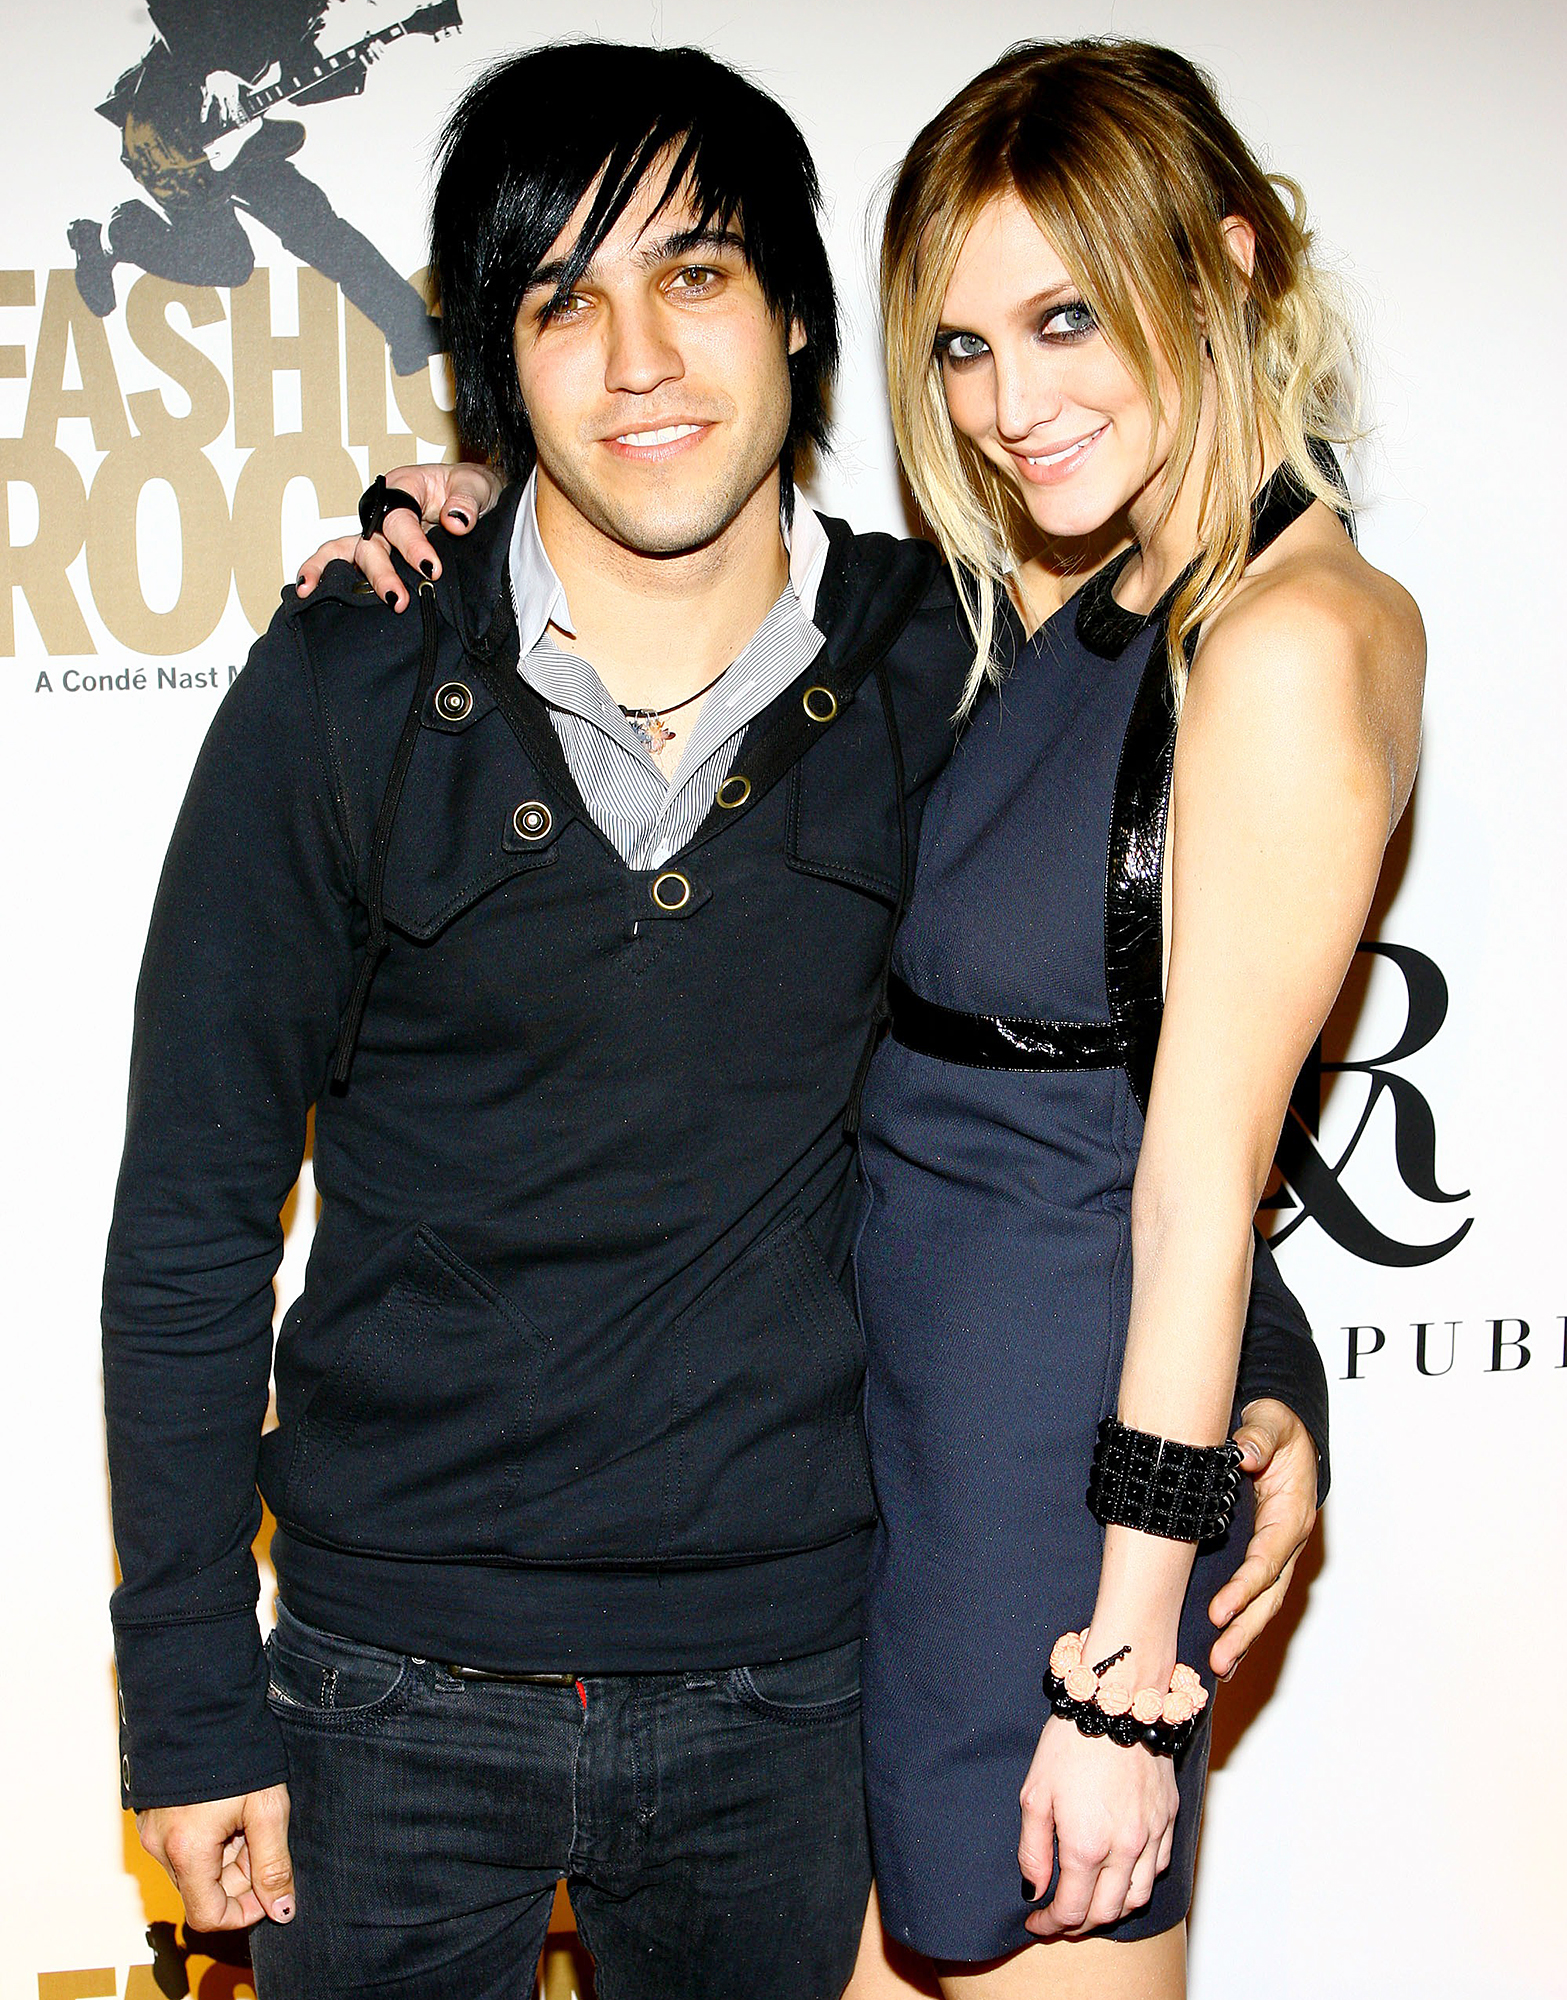 Ashlee Simpson Evan Ross Great Relationship Pete Wentz - Pete Wentz and Ashlee Simpson attend the Rock & Republic and Conde Nast Fashion Rocks Pre-Party on September 5, 2007 in New York City.